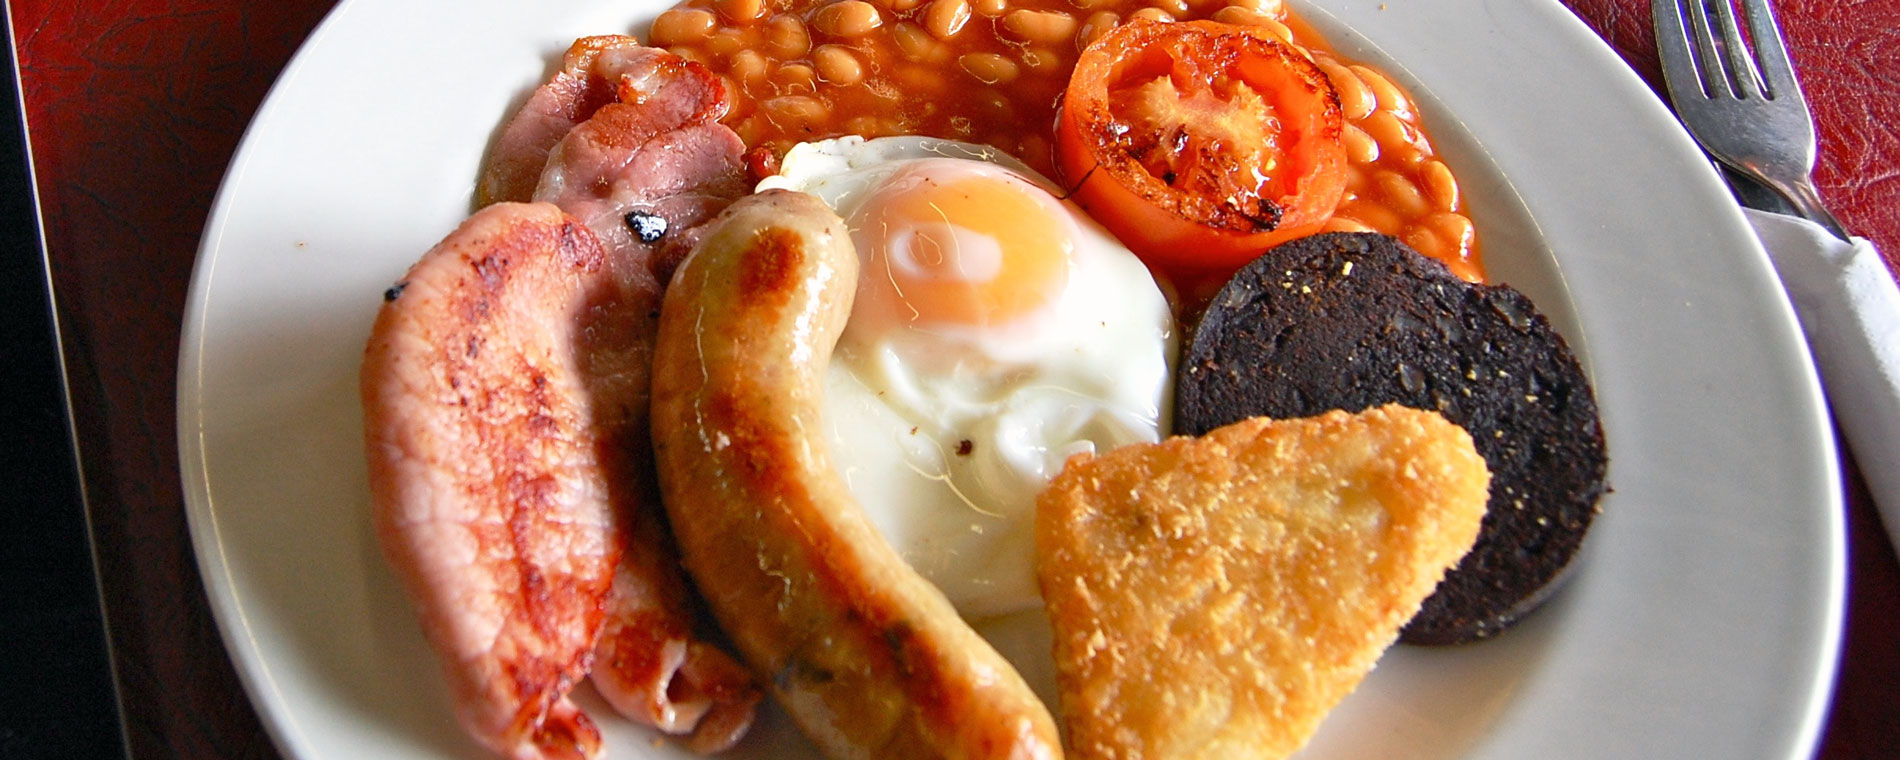 This Is the Best Part of a Full English Breakfast, According to New ...